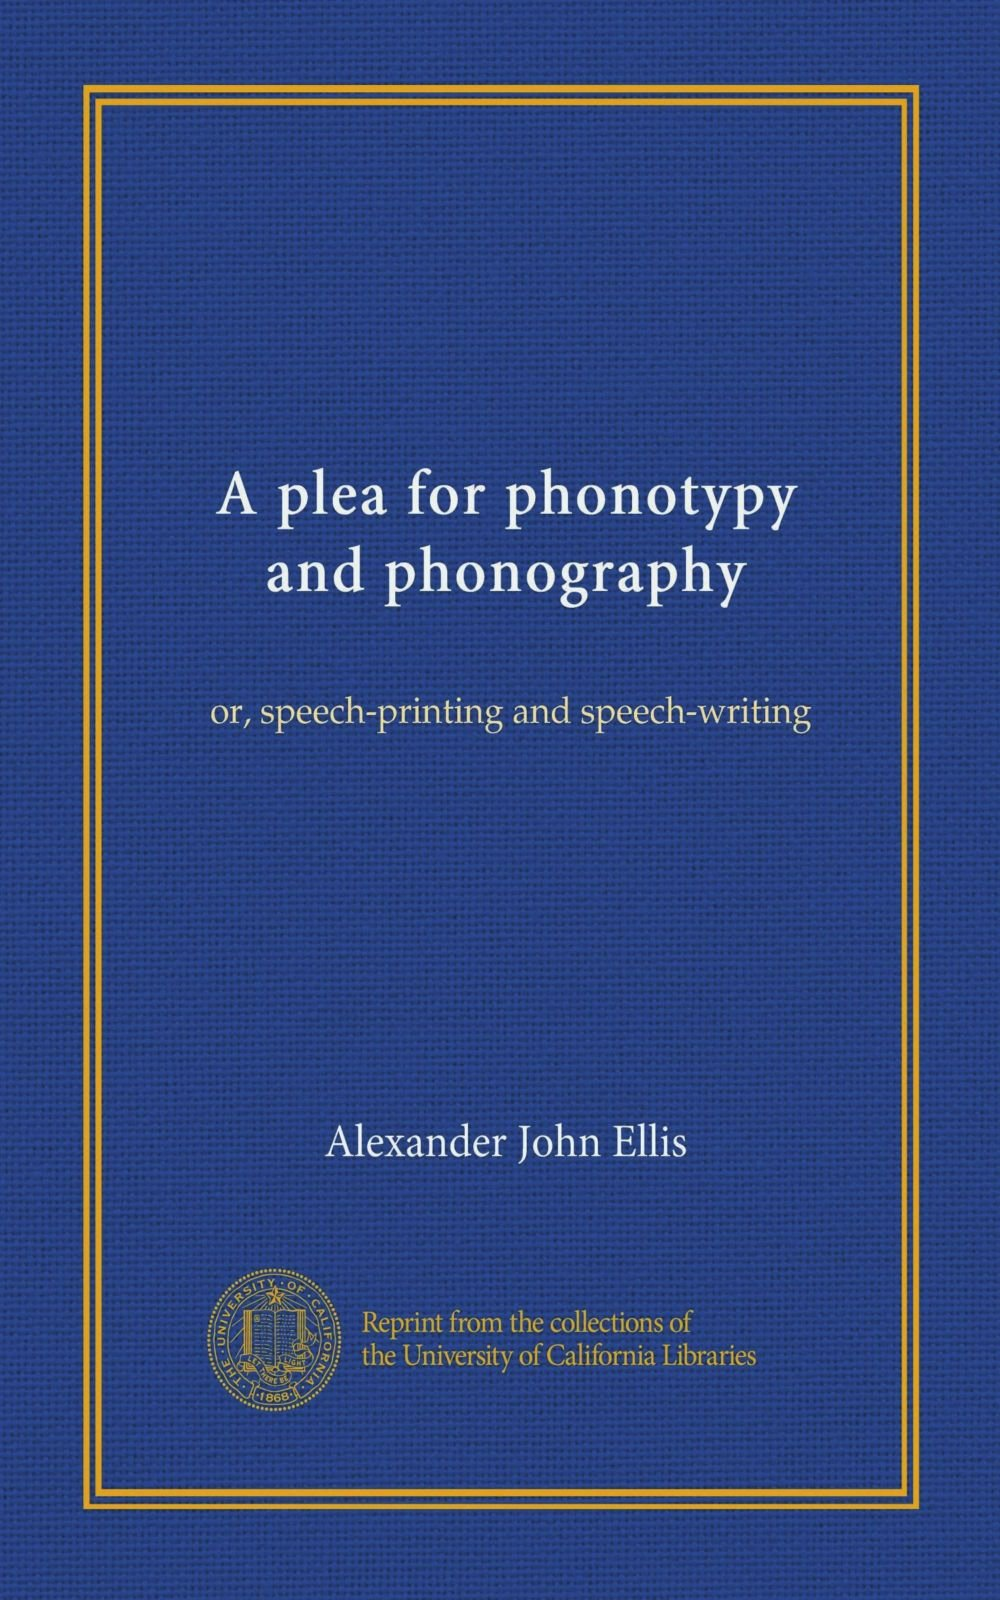 A plea for phonotypy and phonography: or, speech-printing and speech-writing ebook